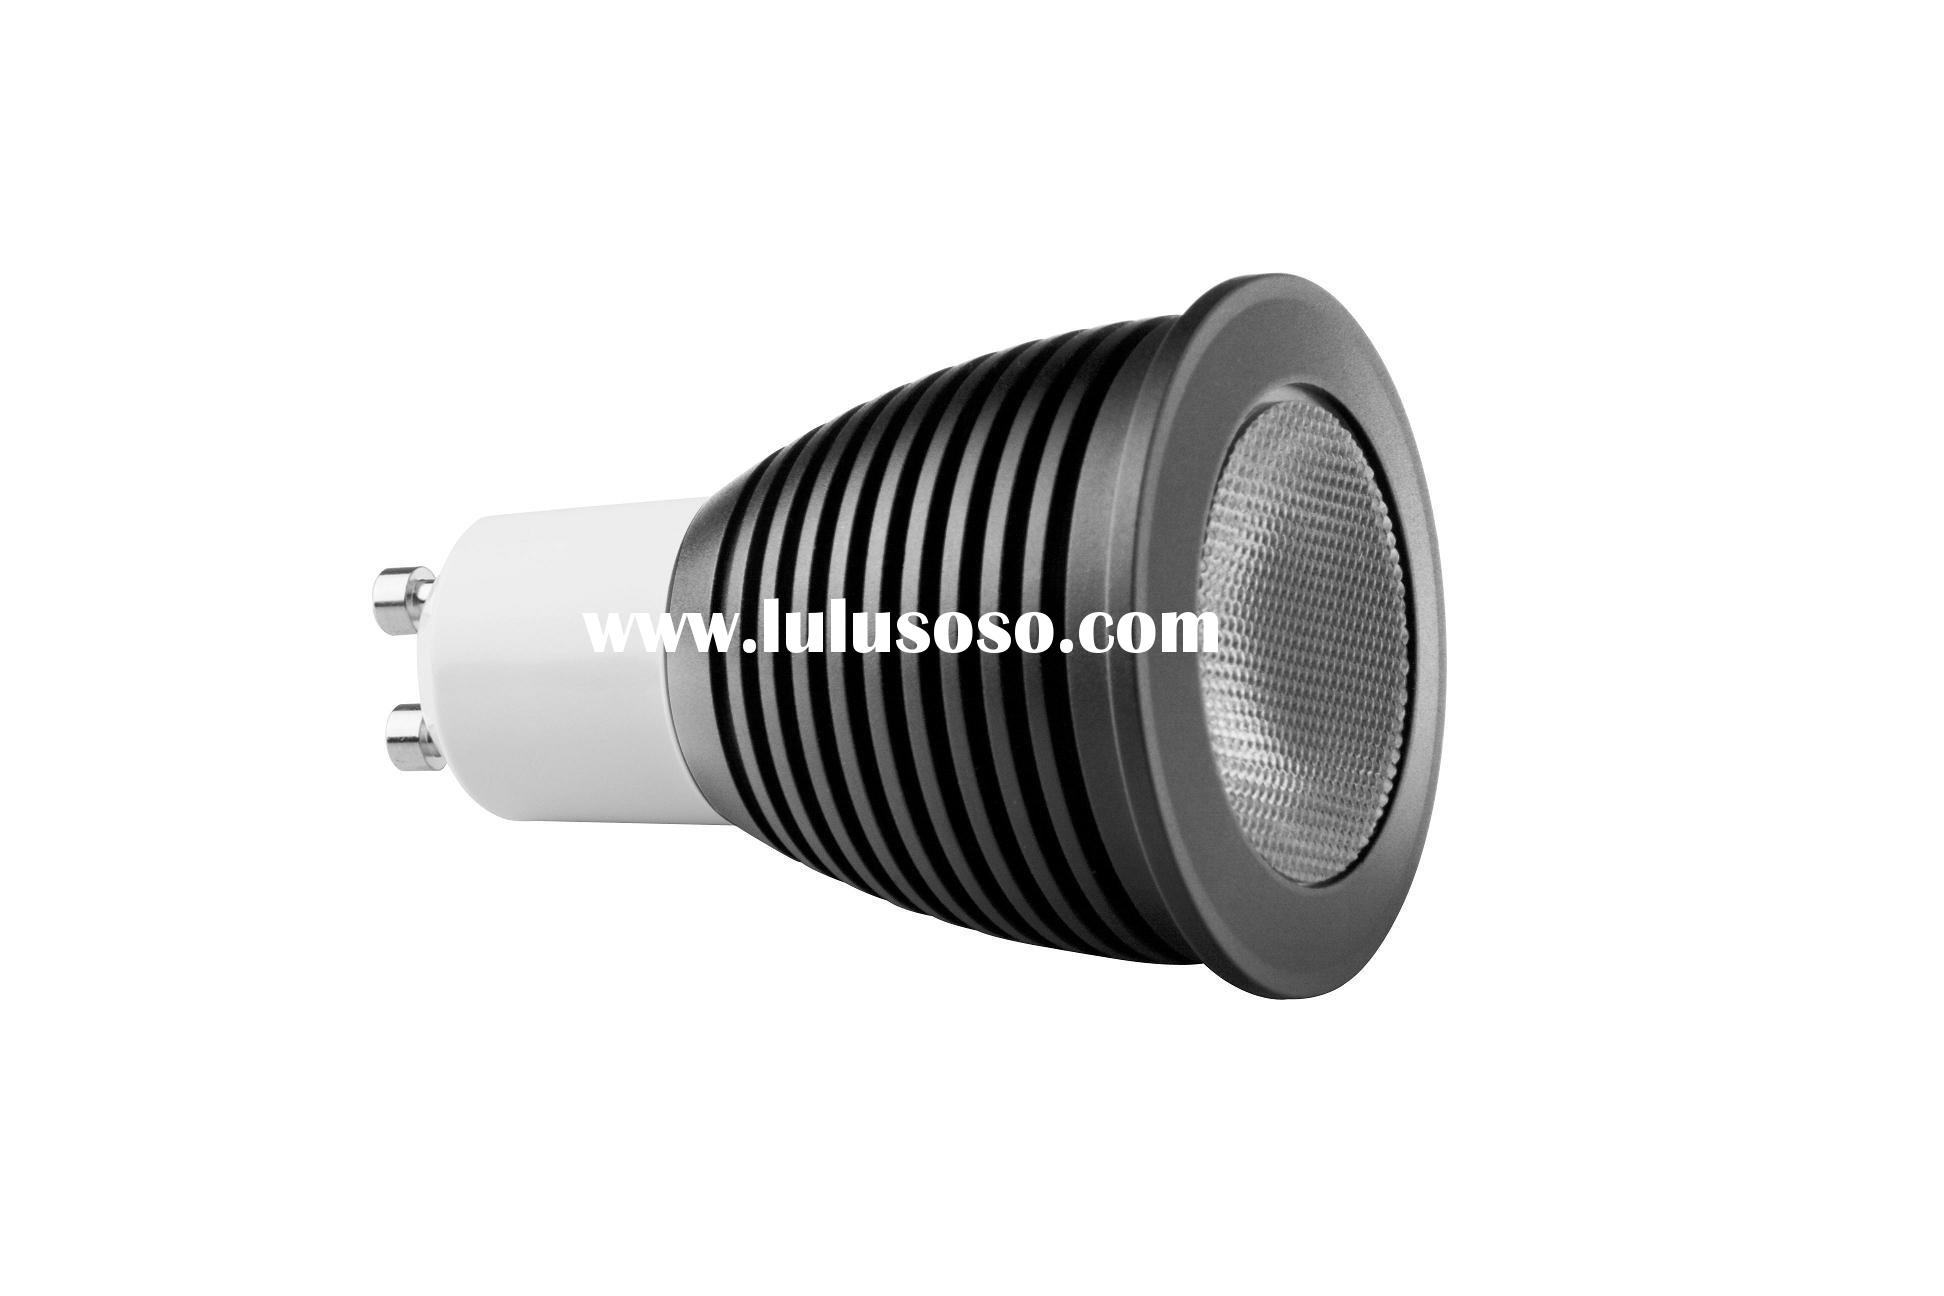 Dimmable Led bulb-GU10